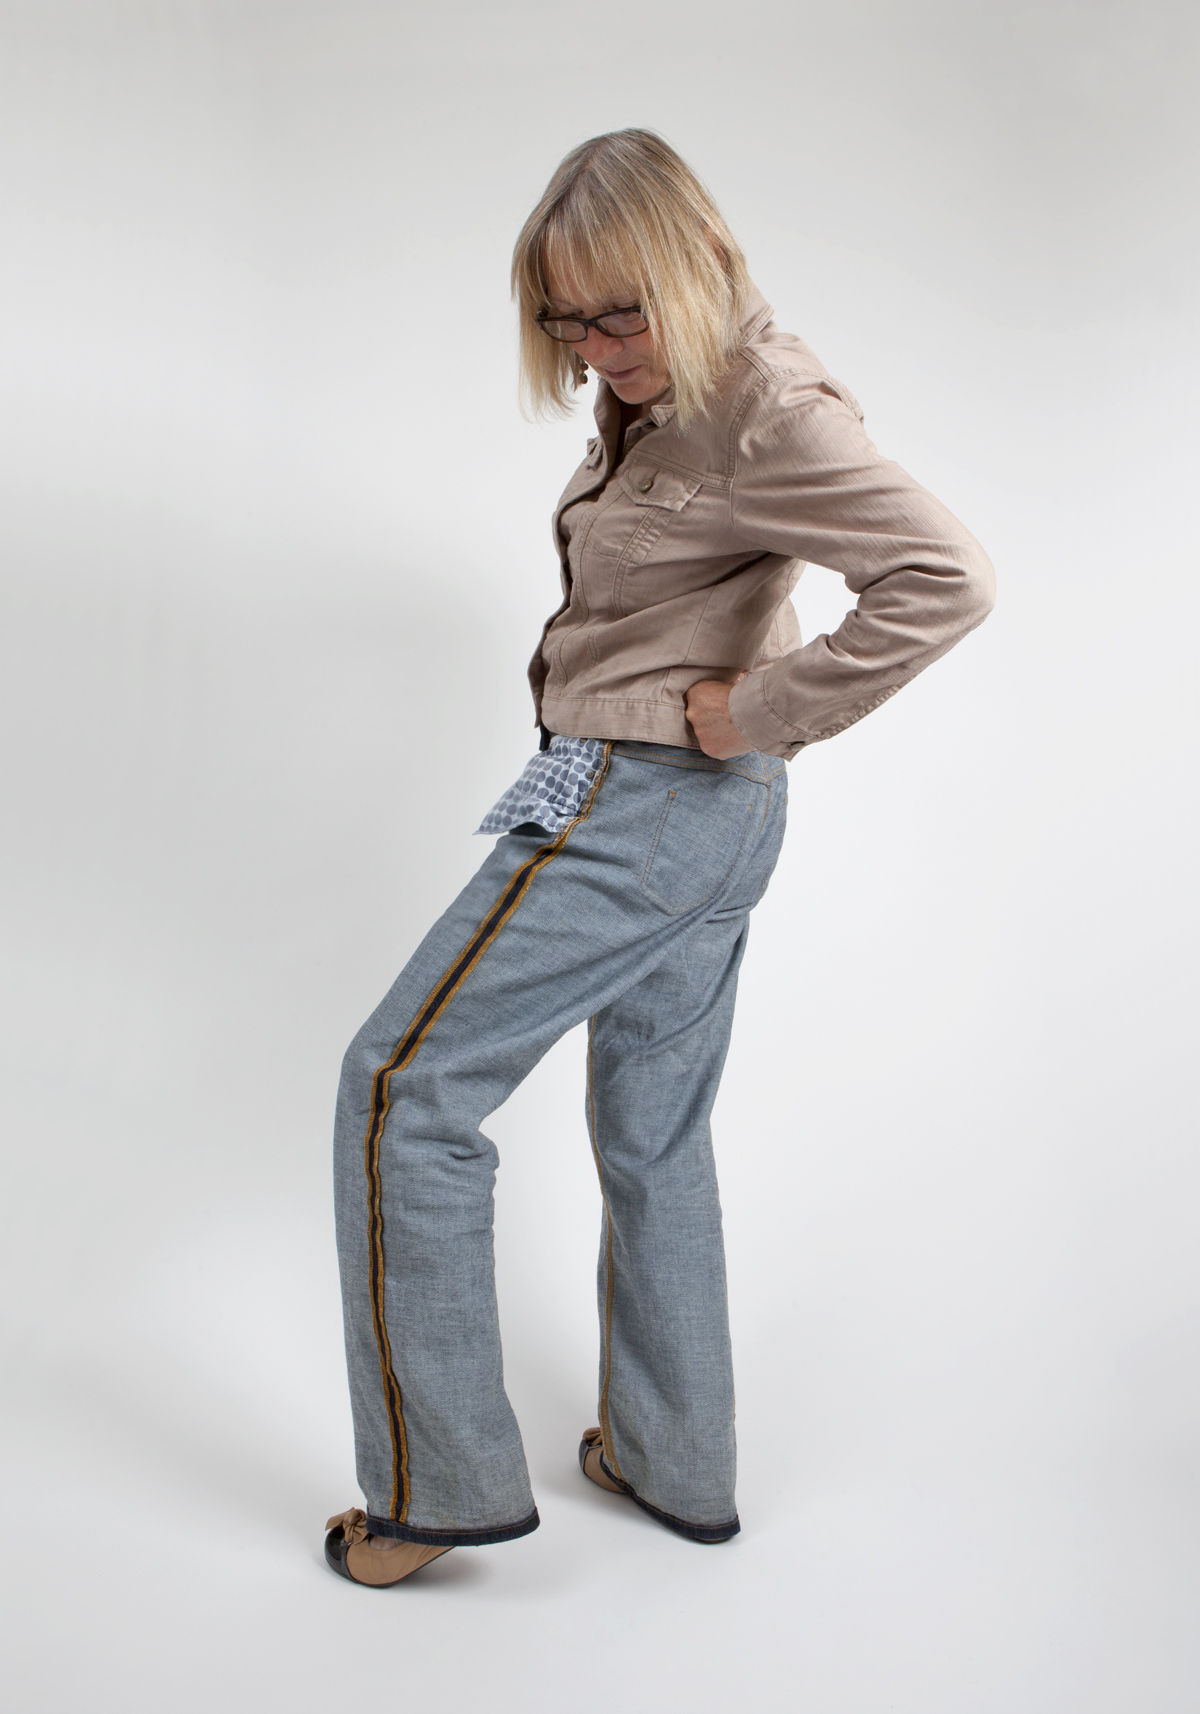 Kate modelling for  Trouser Town